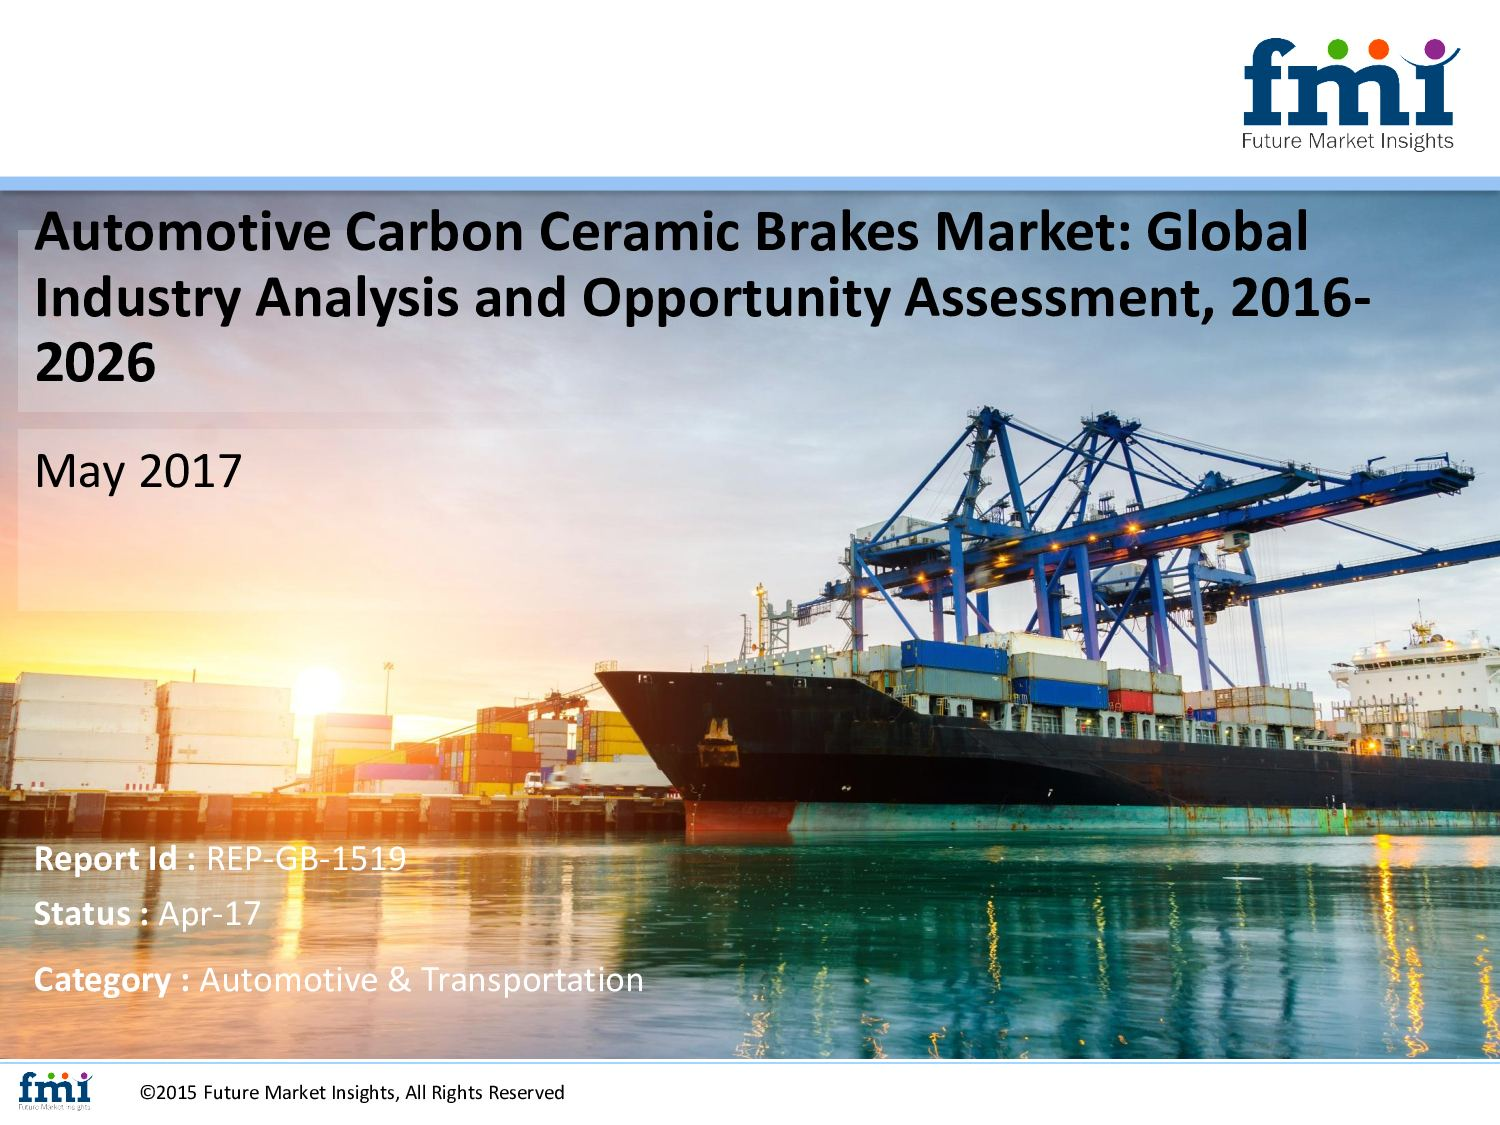 Calaméo - US$ 265 Mn Automotive Carbon Ceramic Brakes Market